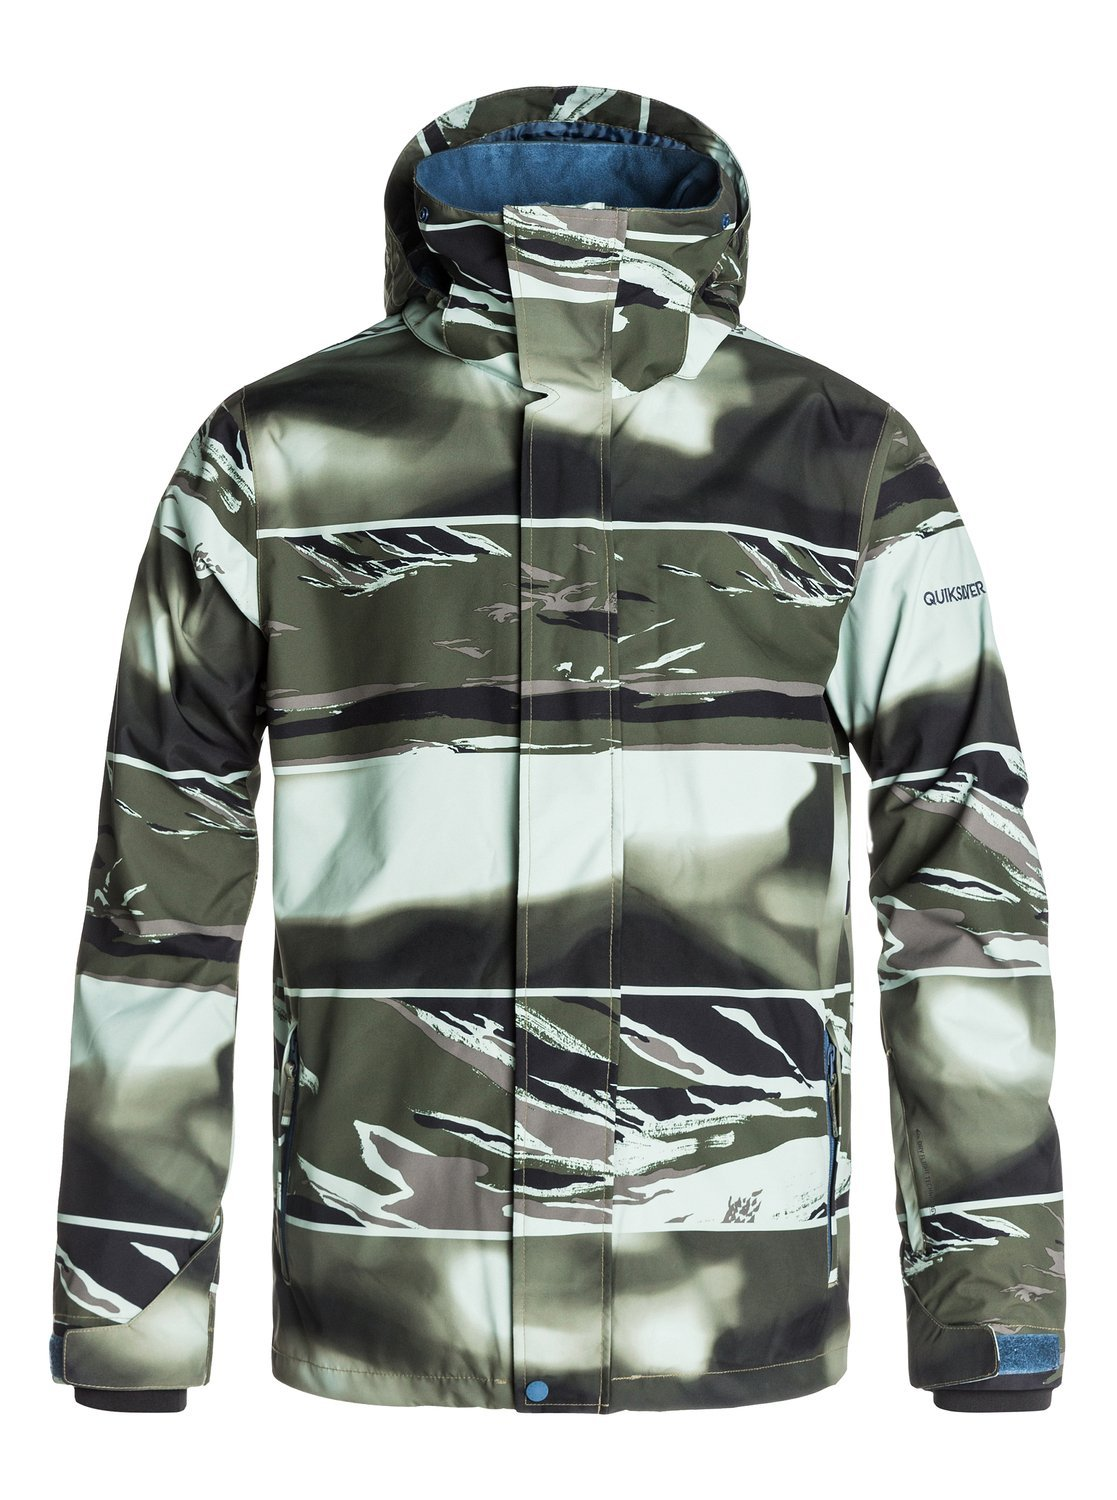 Quiksilver Mens Mission Printed Shell - Snowboard Jacket Snowboard Jacket